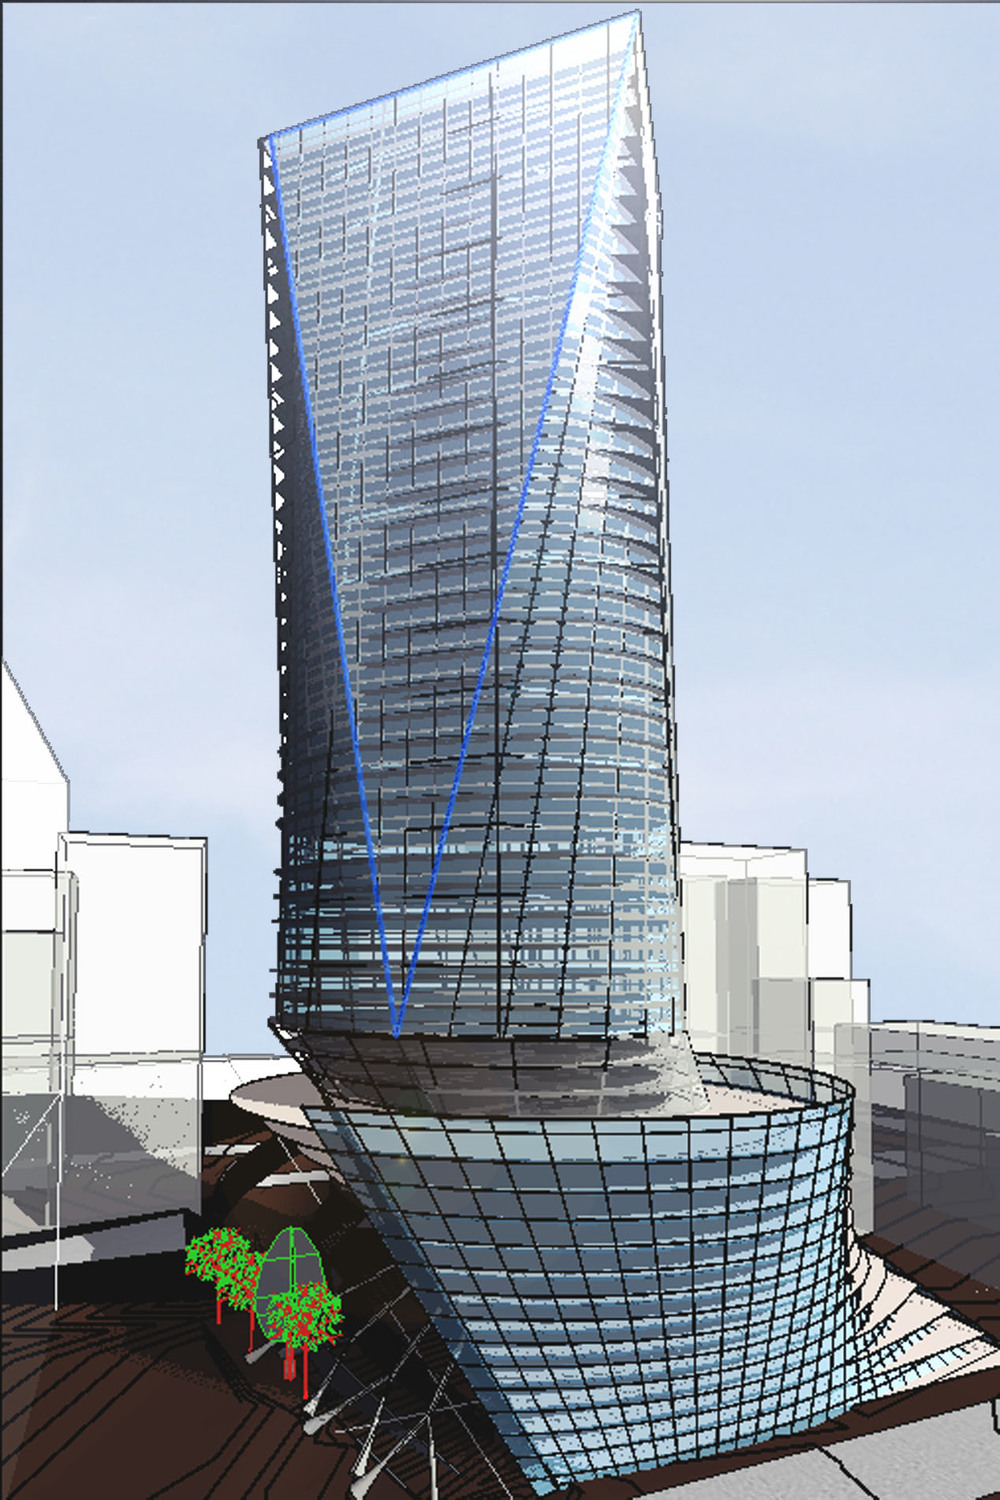 New york 435 west 33rd st ft floors skyscraperpage for 1 new york plaza 33rd floor new york ny 10004